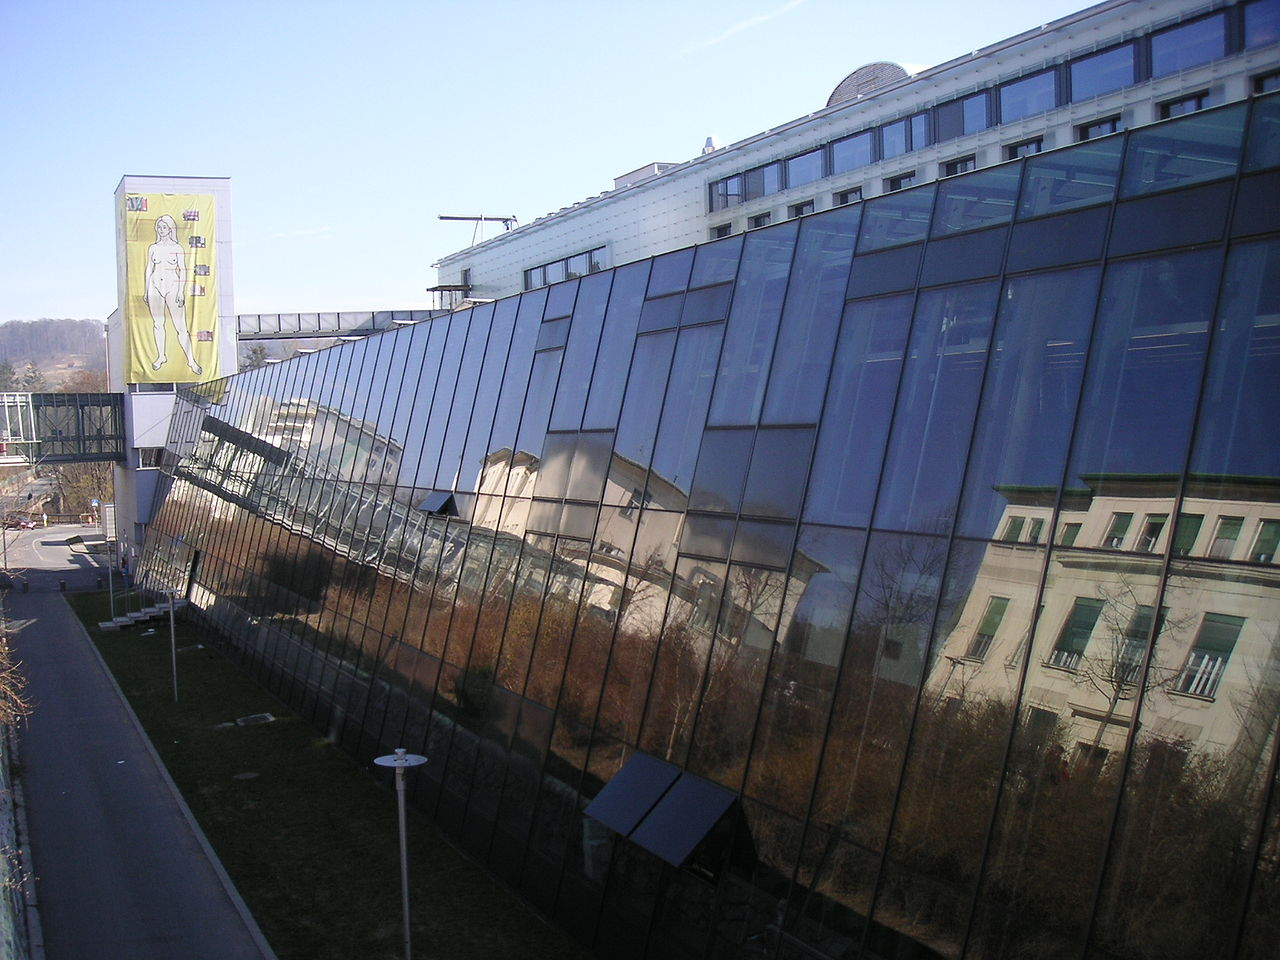 Zmf center of medical research graz